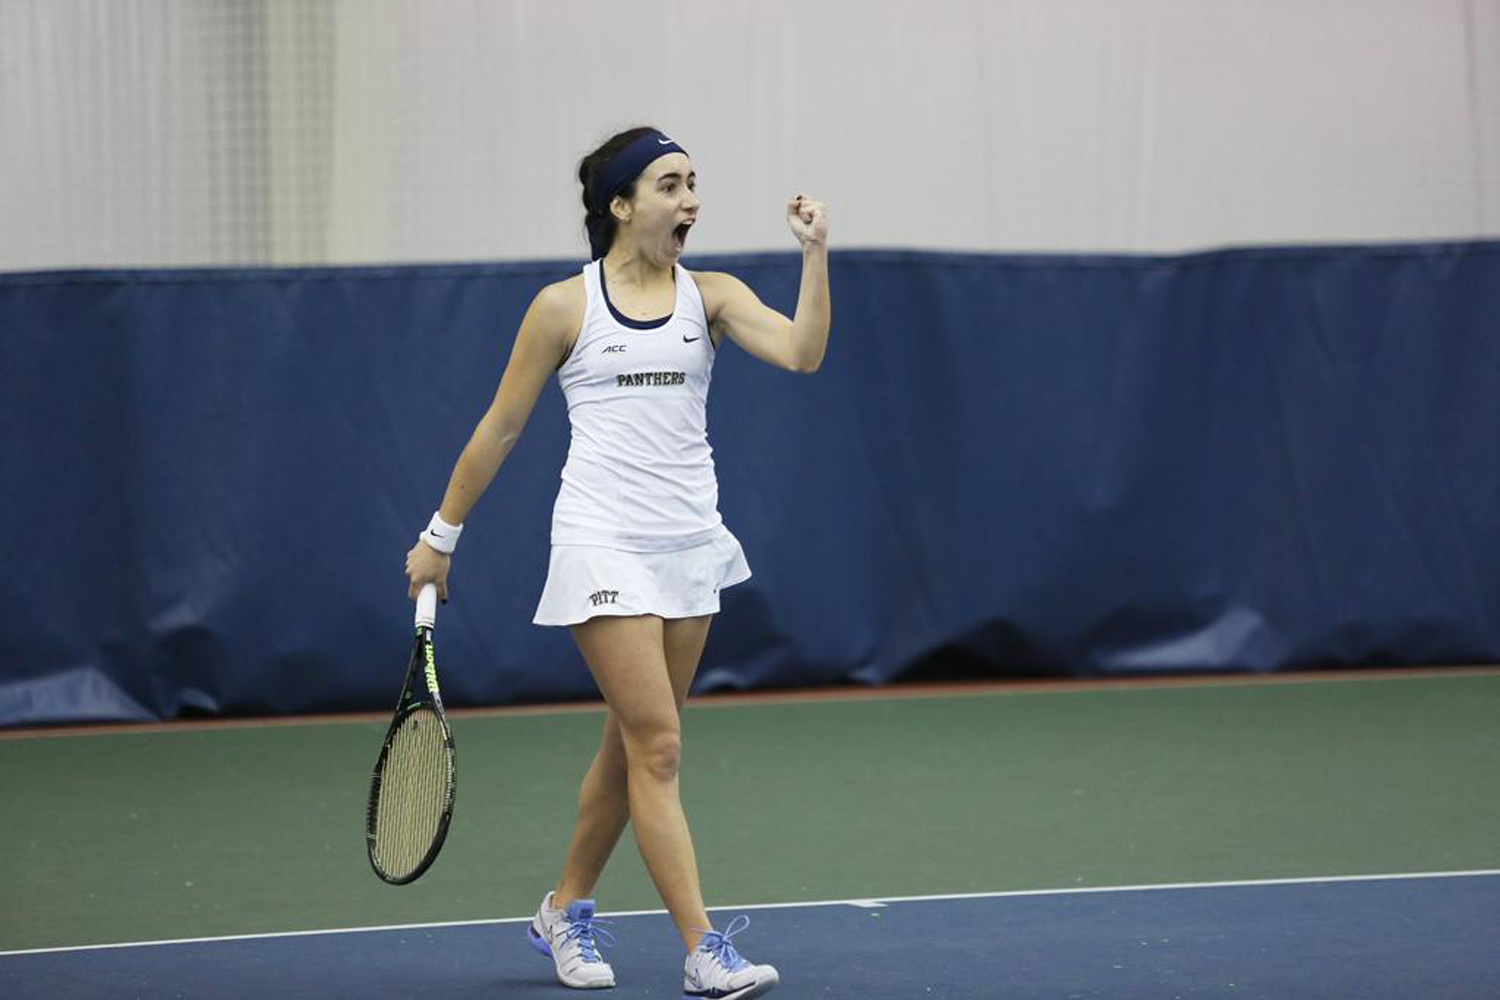 Gabriela Rezende is one of four seniors on the Pitt women's tennis team, which will play its last season this spring.